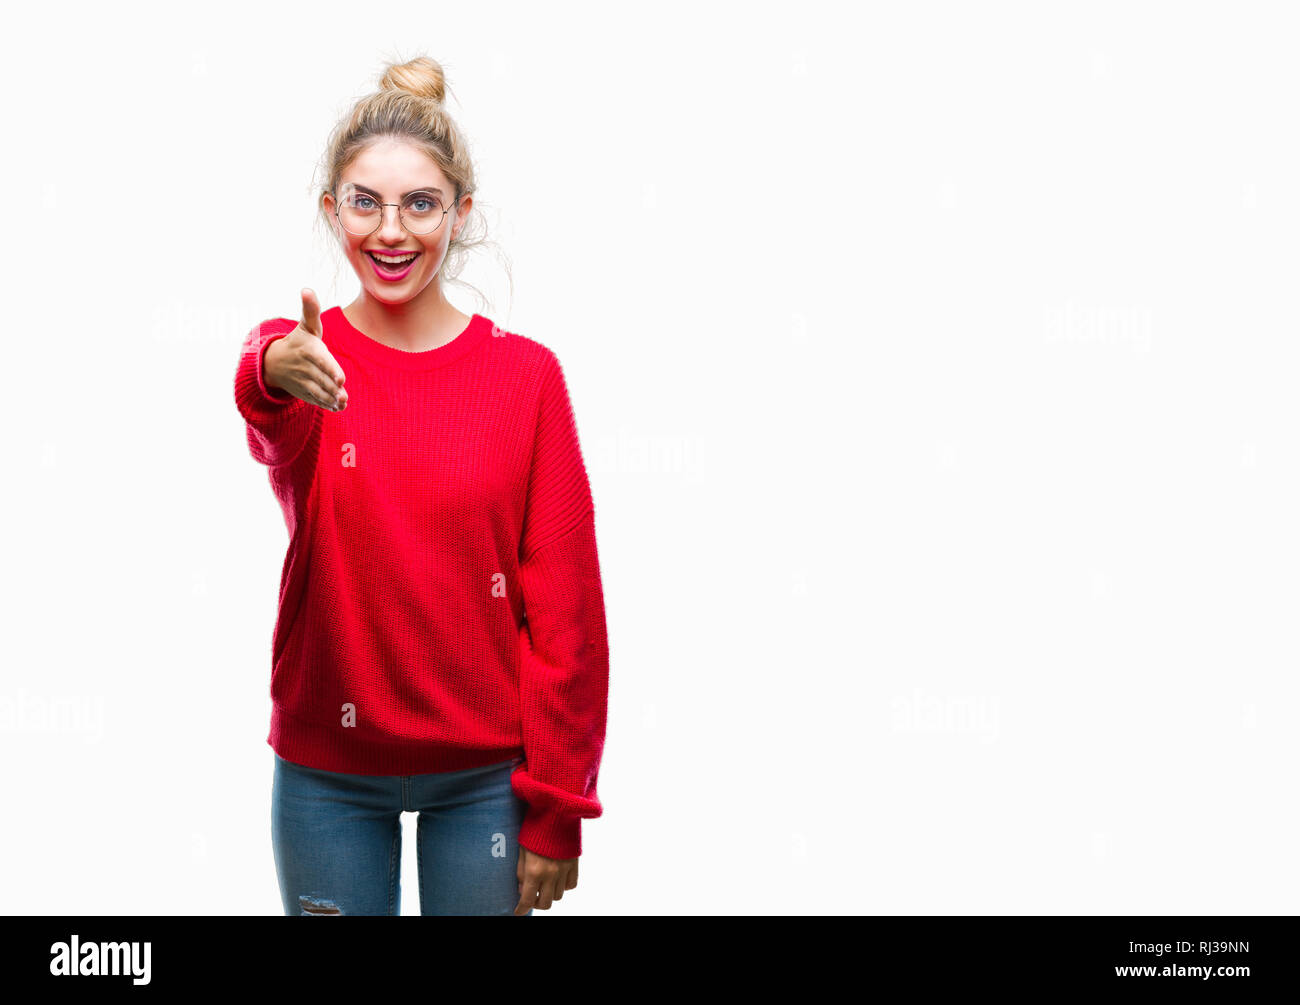 a9eb1552 Young beautiful blonde woman wearing red sweater and glasses over isolated  background smiling friendly offering handshake